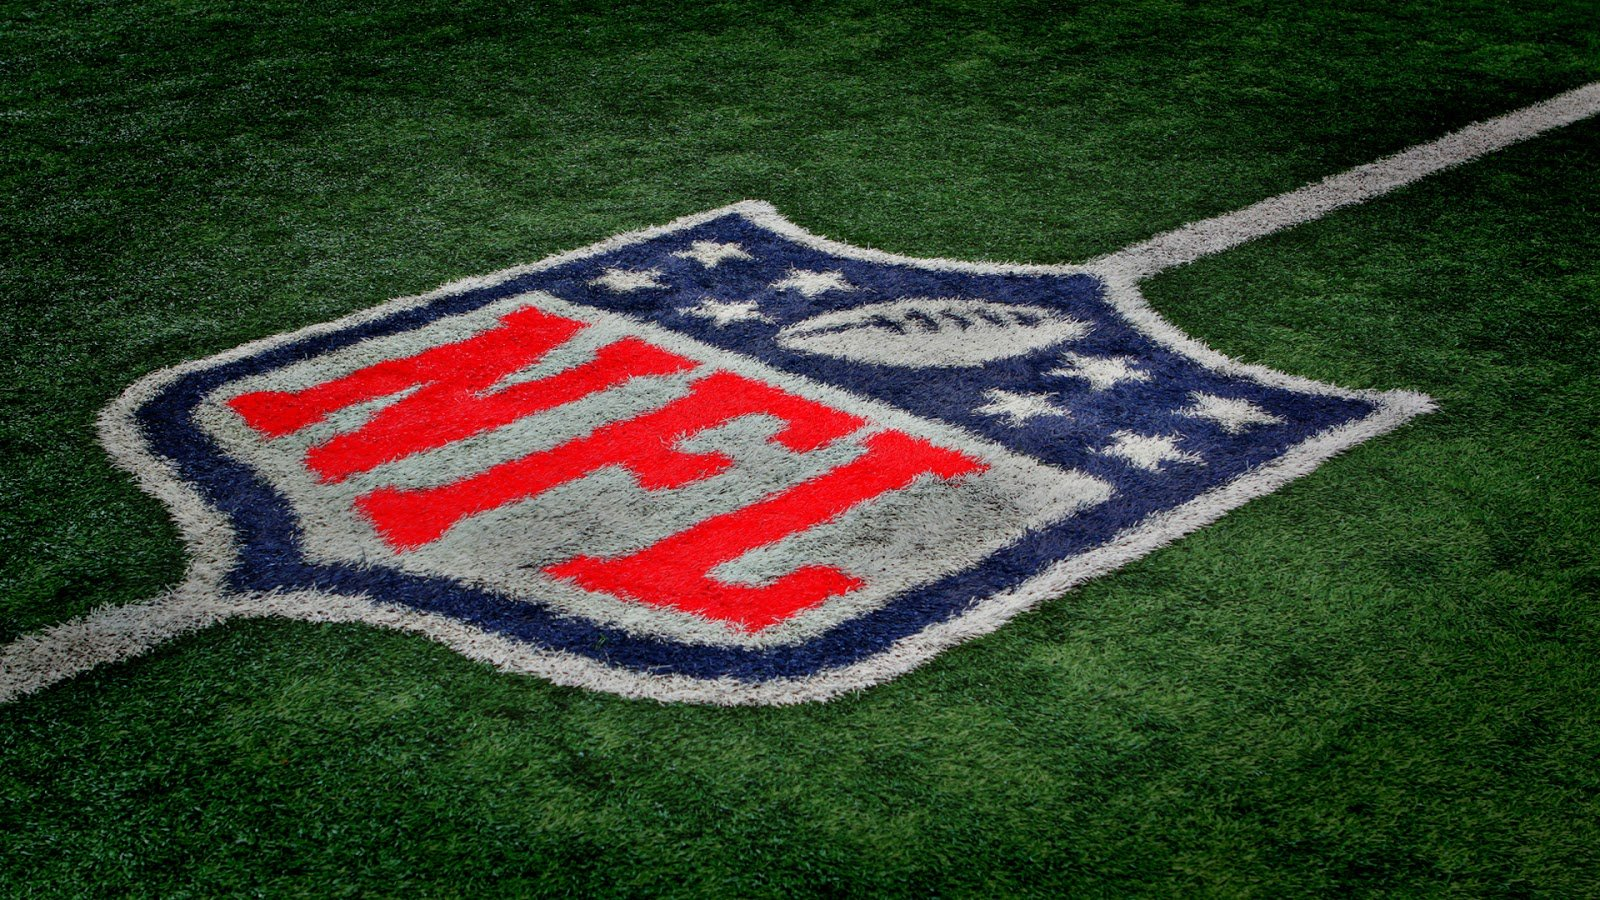 NFL 2012   Download NFL Football HD Wallpapers for 1600x900